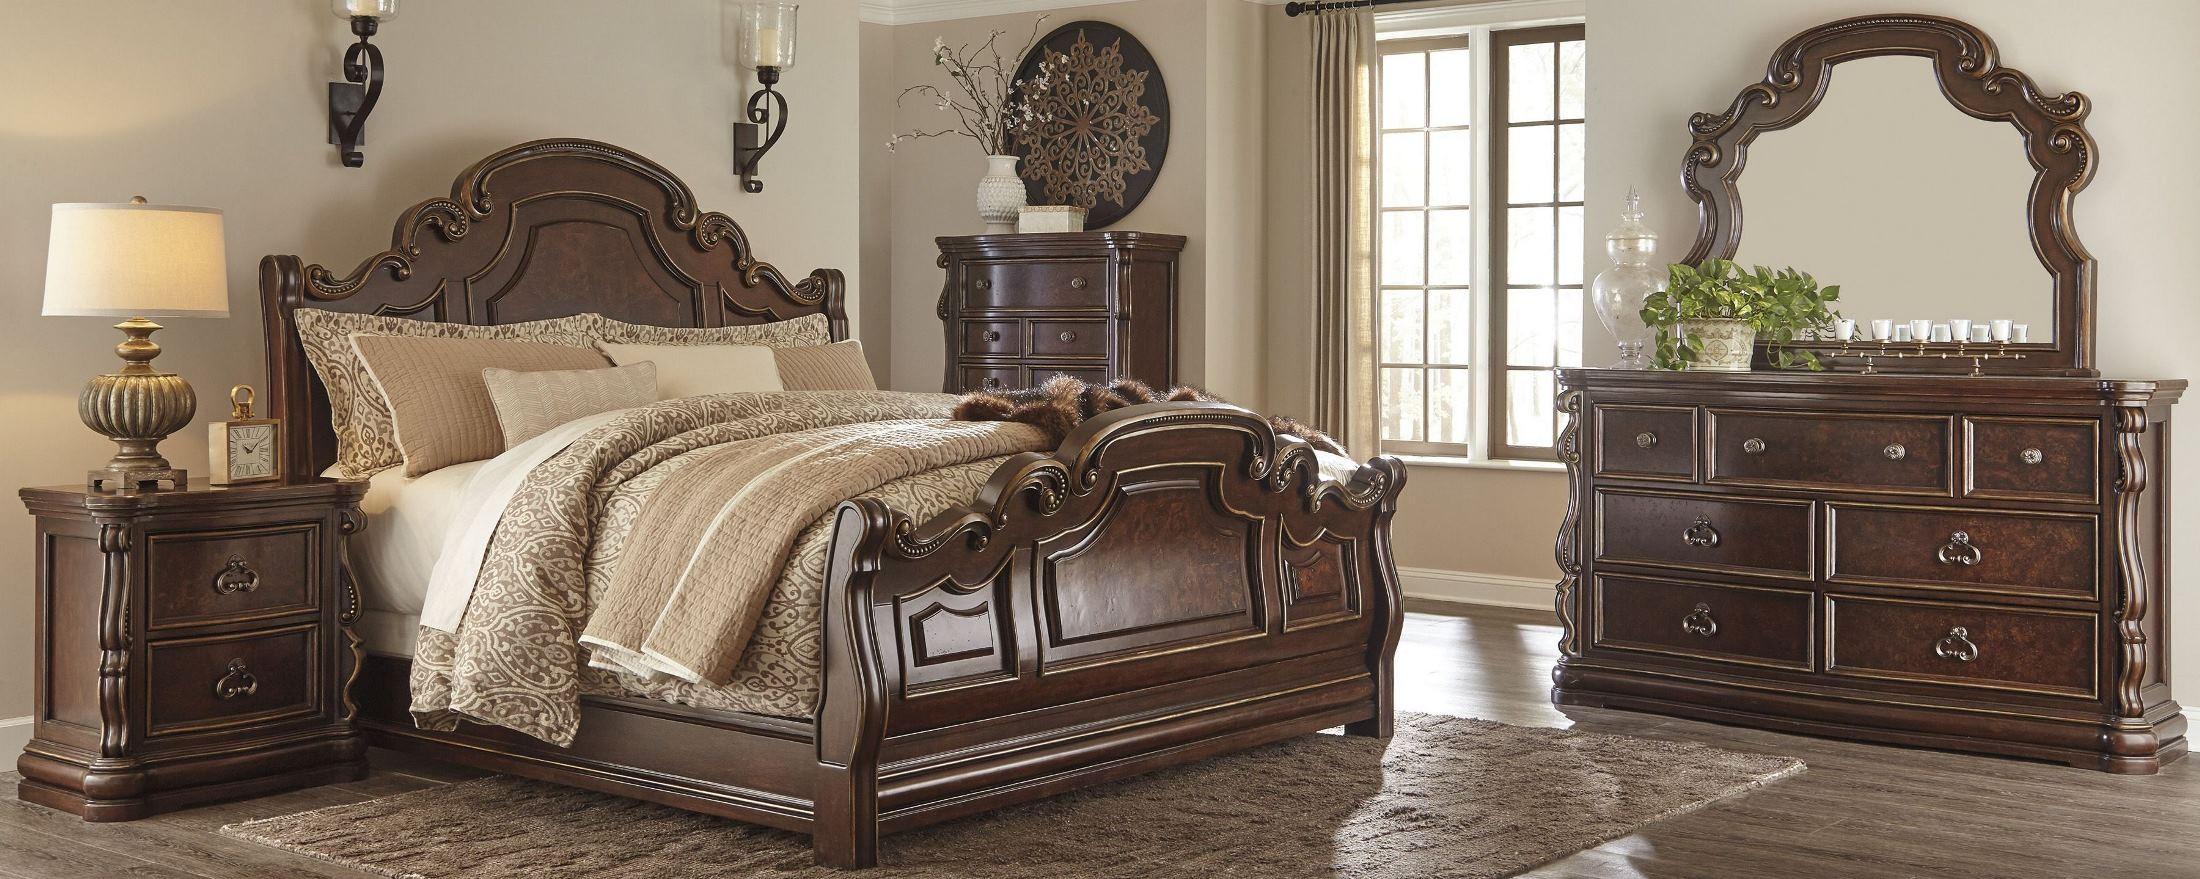 florentown dark brown sleigh bedroom set b715 57 54 96 ashley